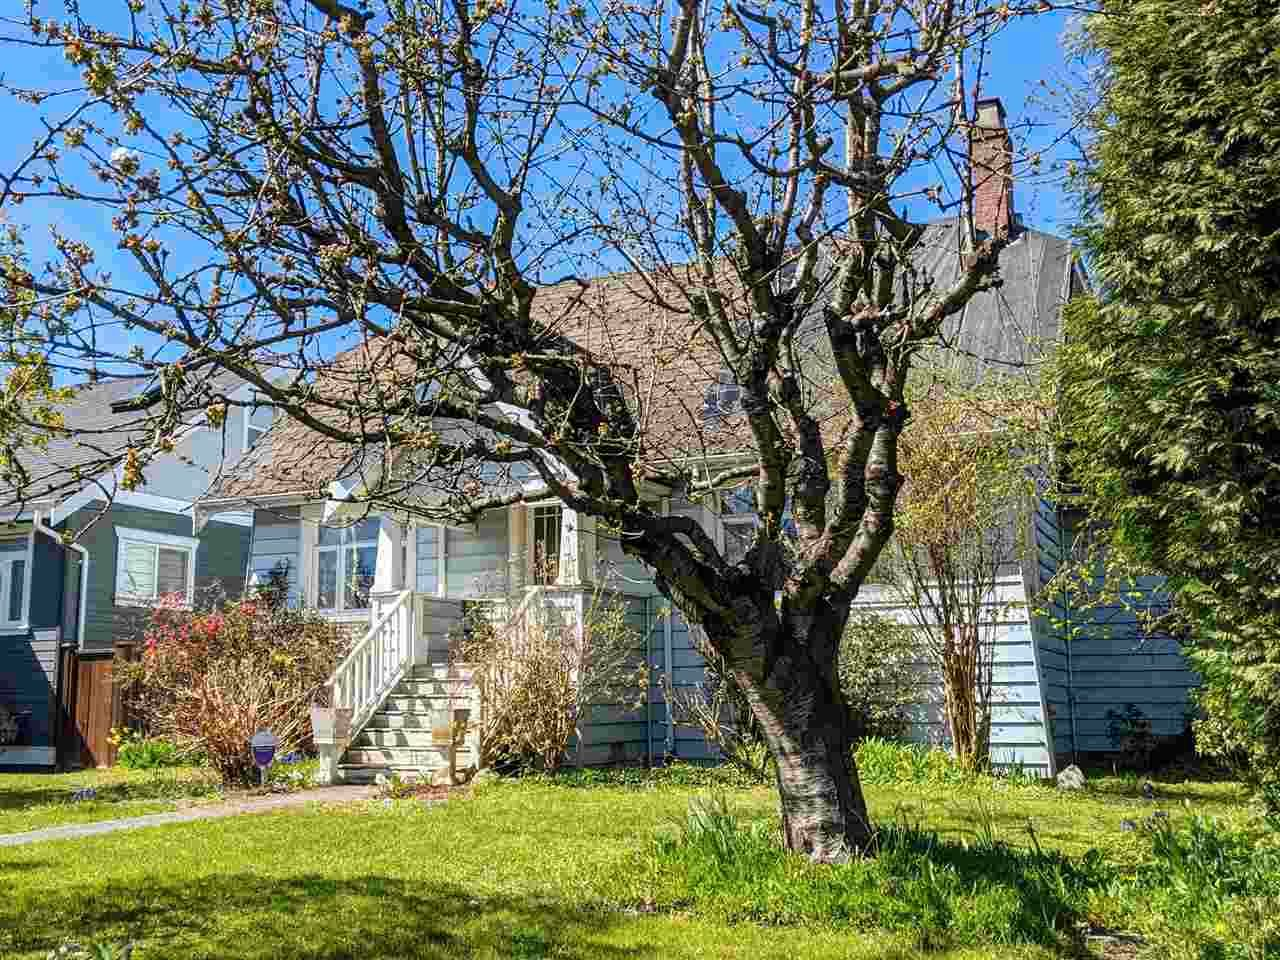 """Main Photo: 1901 SEVENTH Avenue in New Westminster: West End NW House for sale in """"GRIMSTON PARK"""" : MLS®# R2566380"""